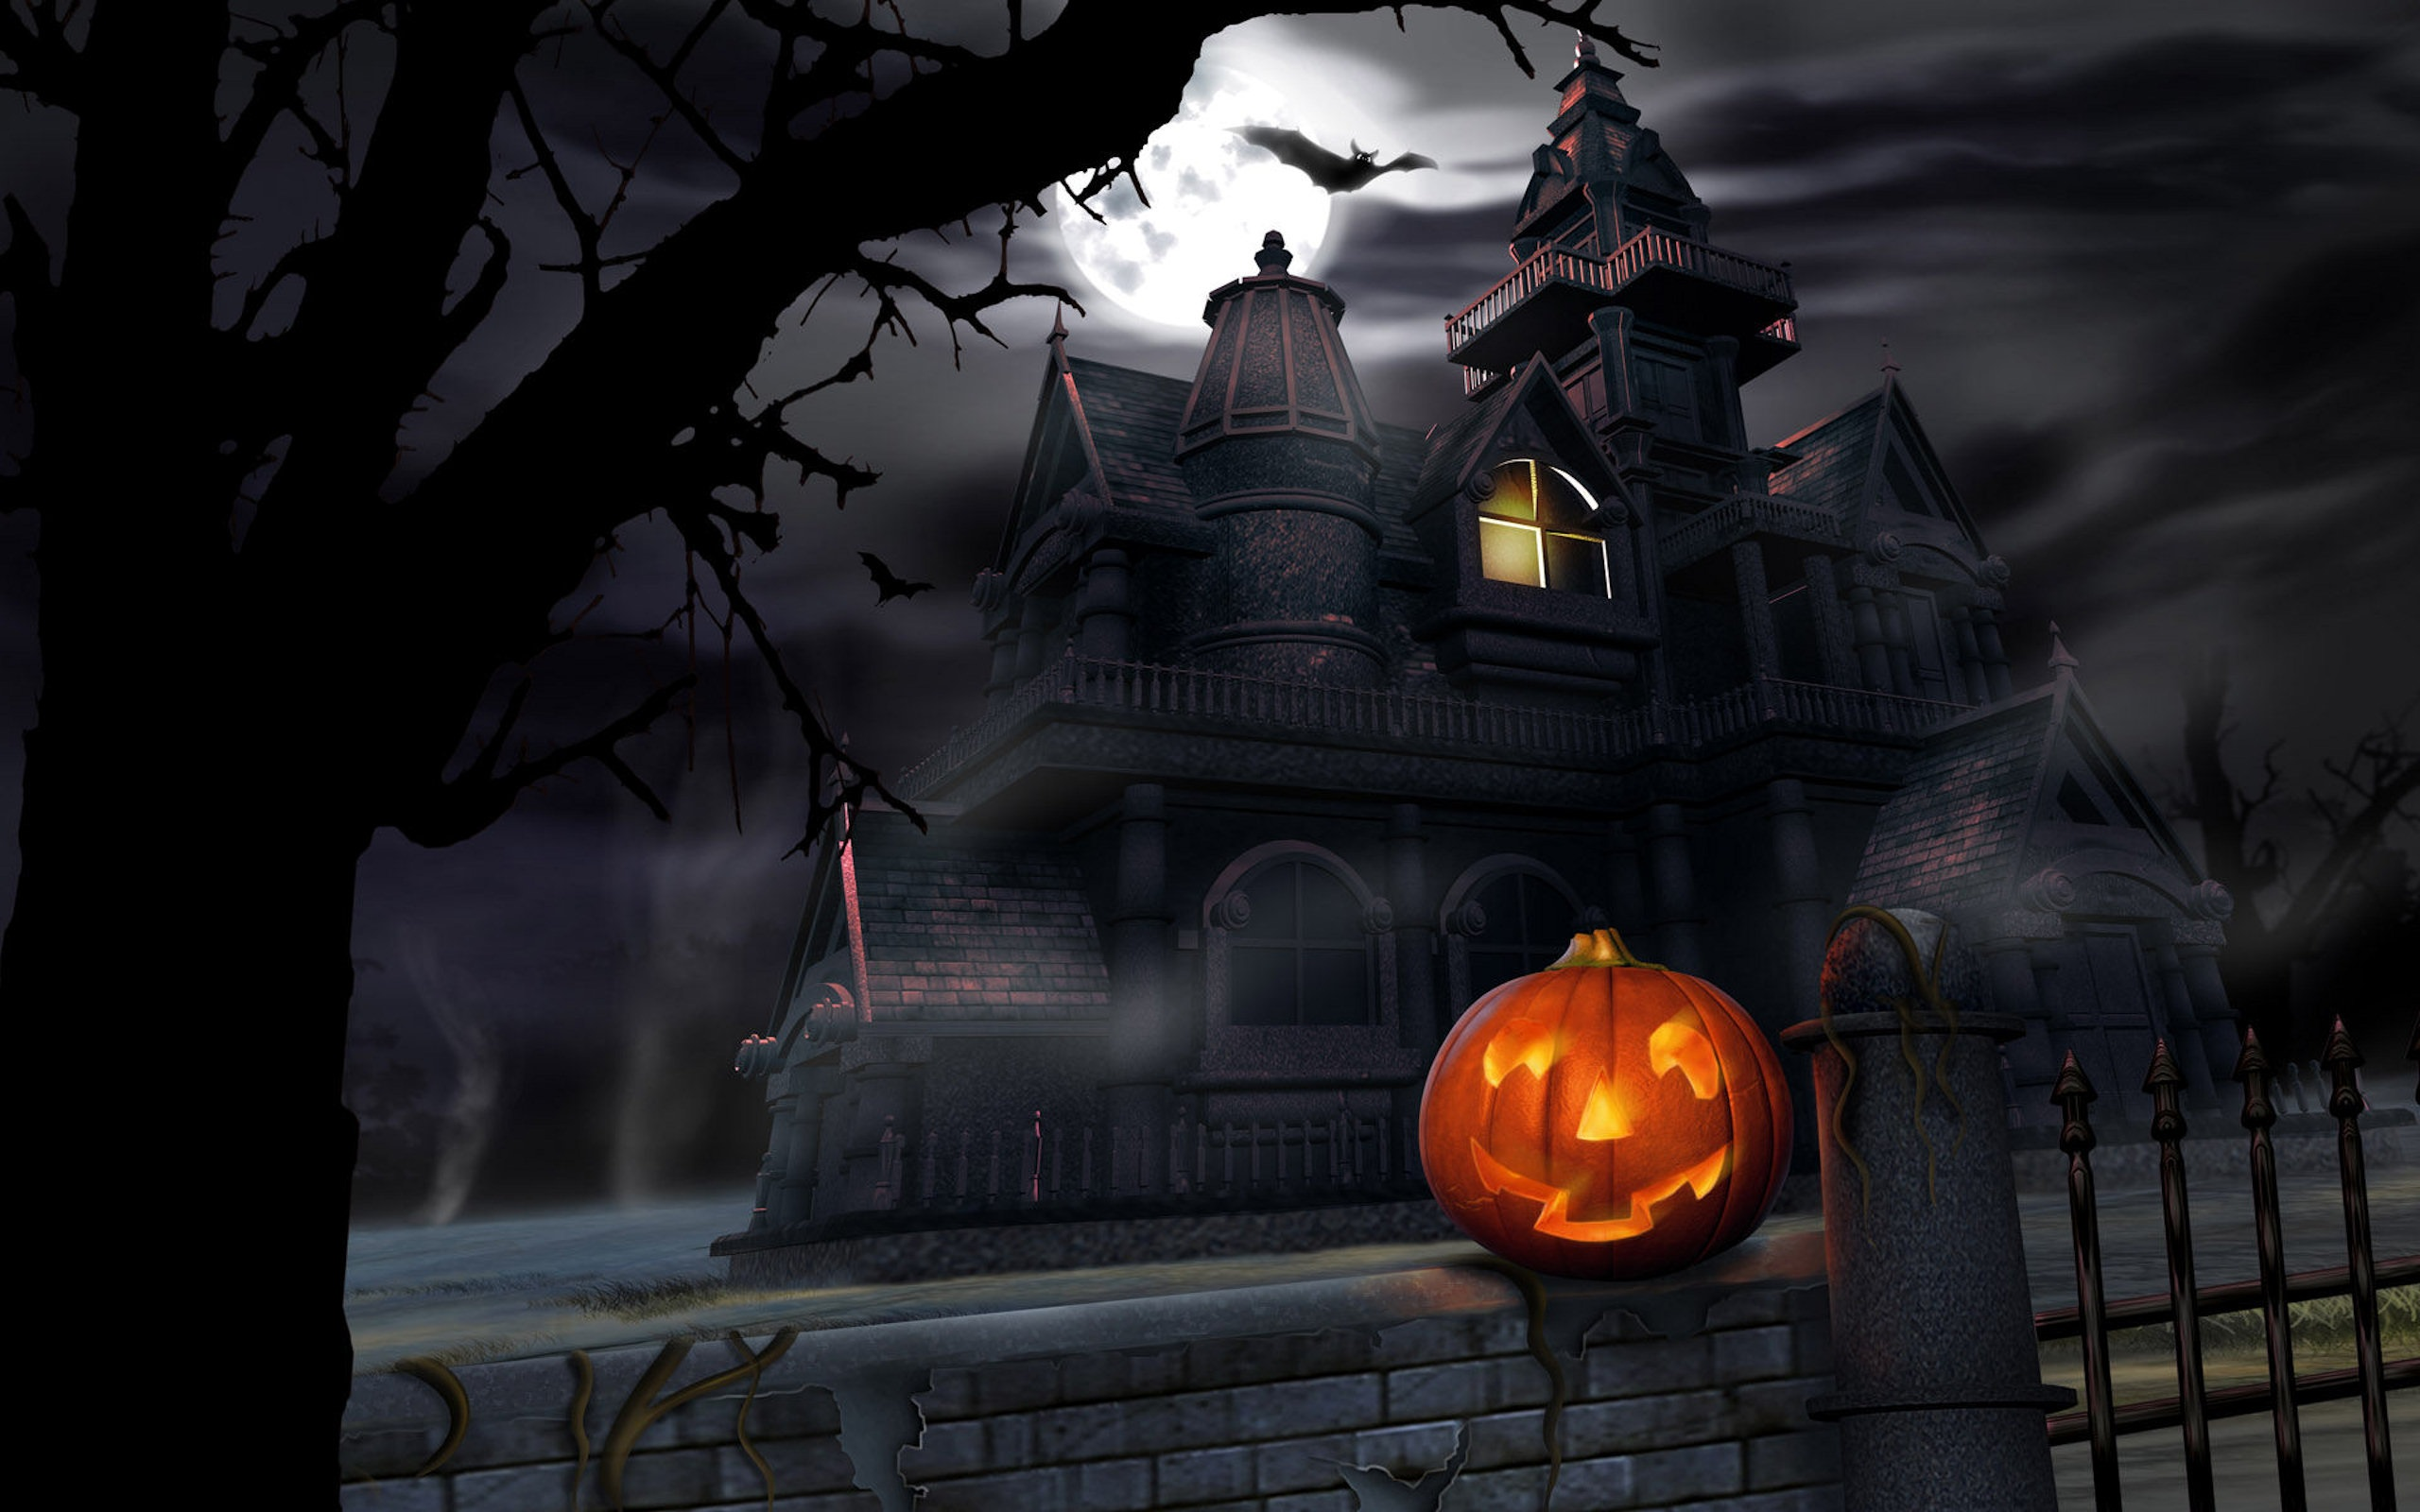 free desktop wallpaper halloween   wwwwallpapers in hdcom 2560x1600